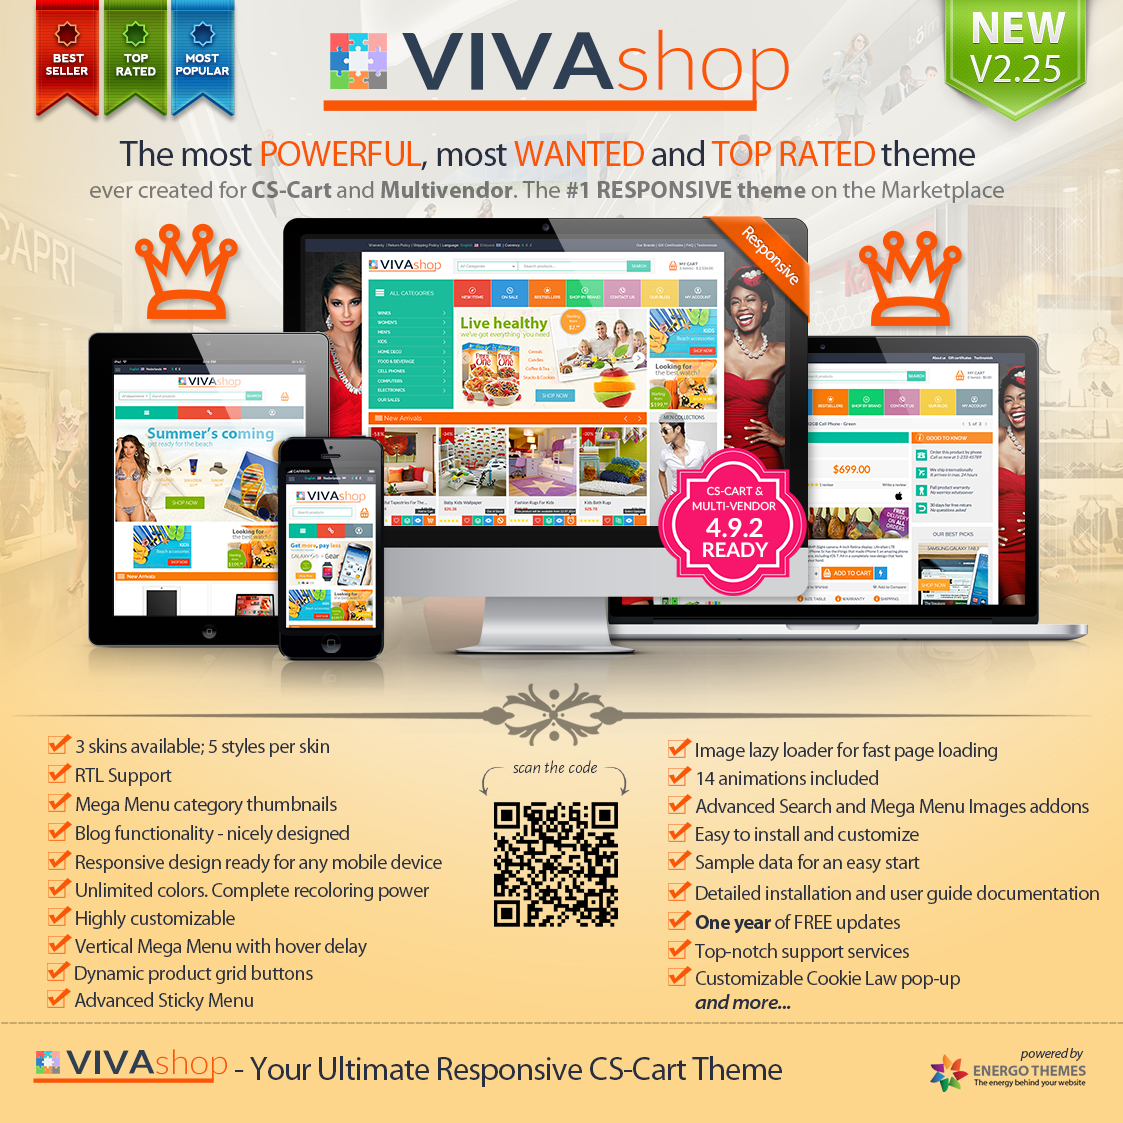 VIVAshop-V2.25-presentation-page-MP.jpg